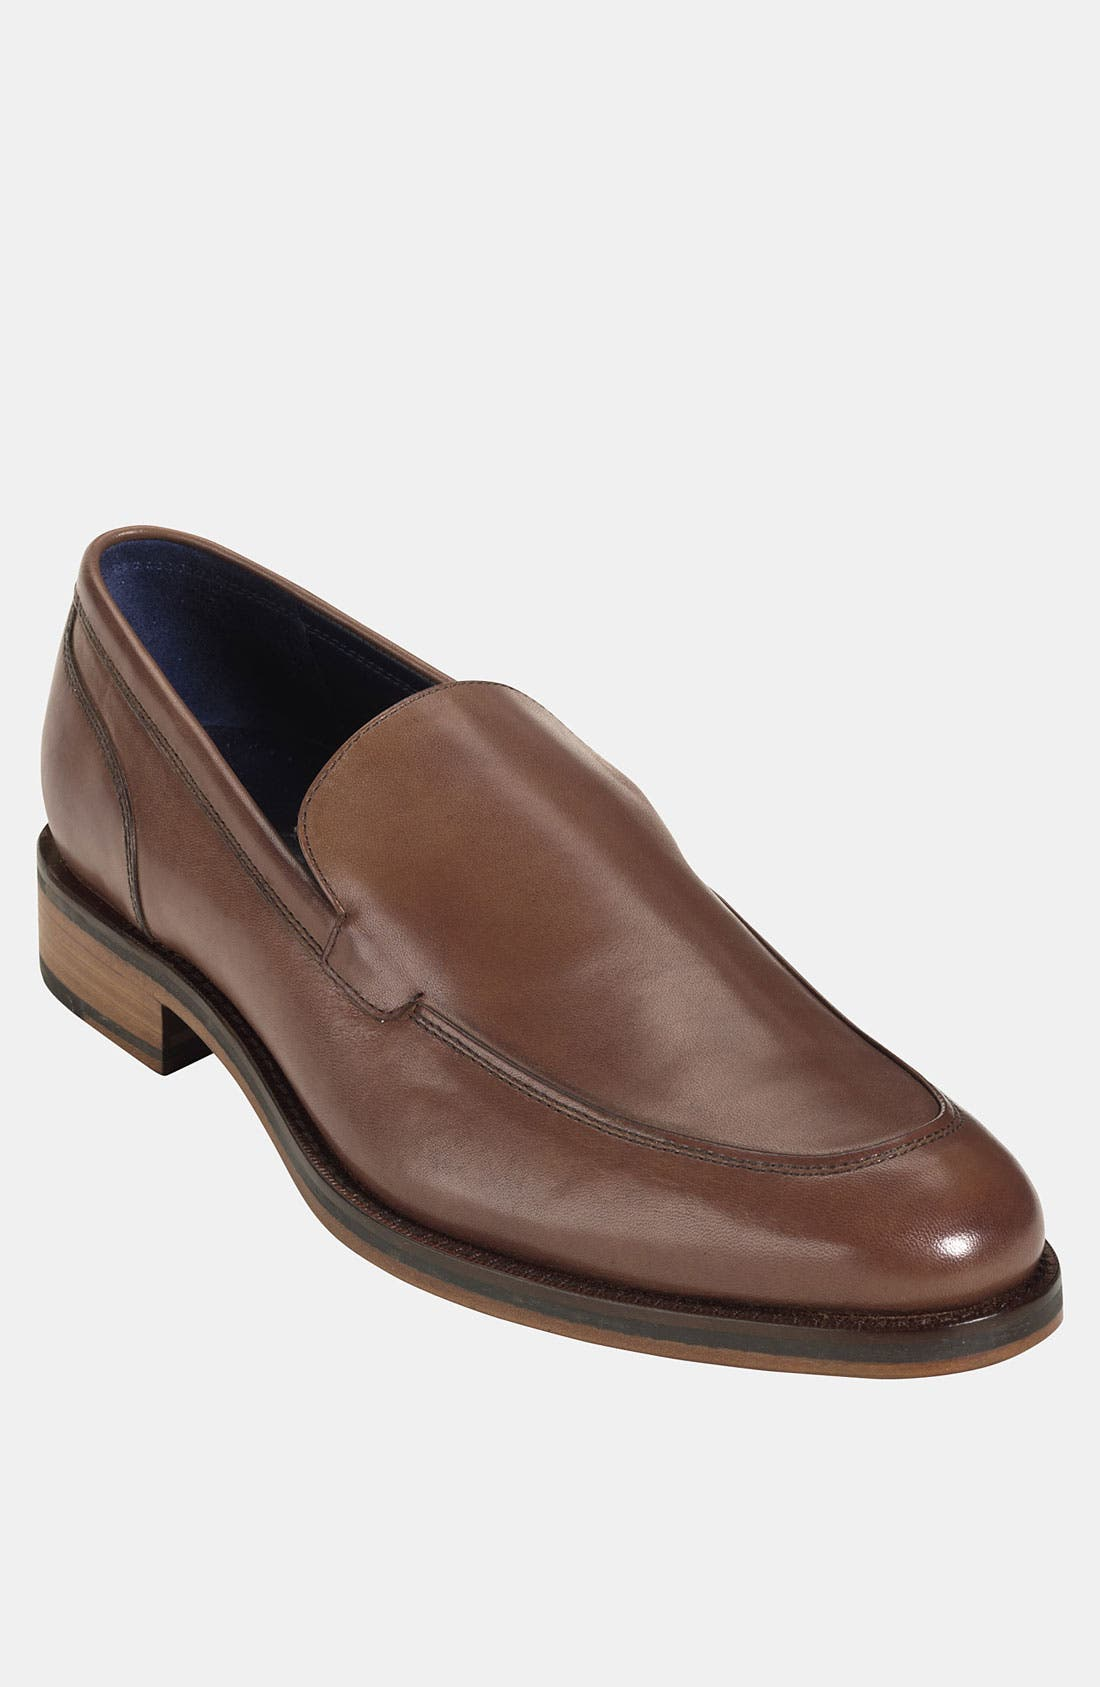 Main Image - Cole Haan 'Air Madison' Venetian Loafer